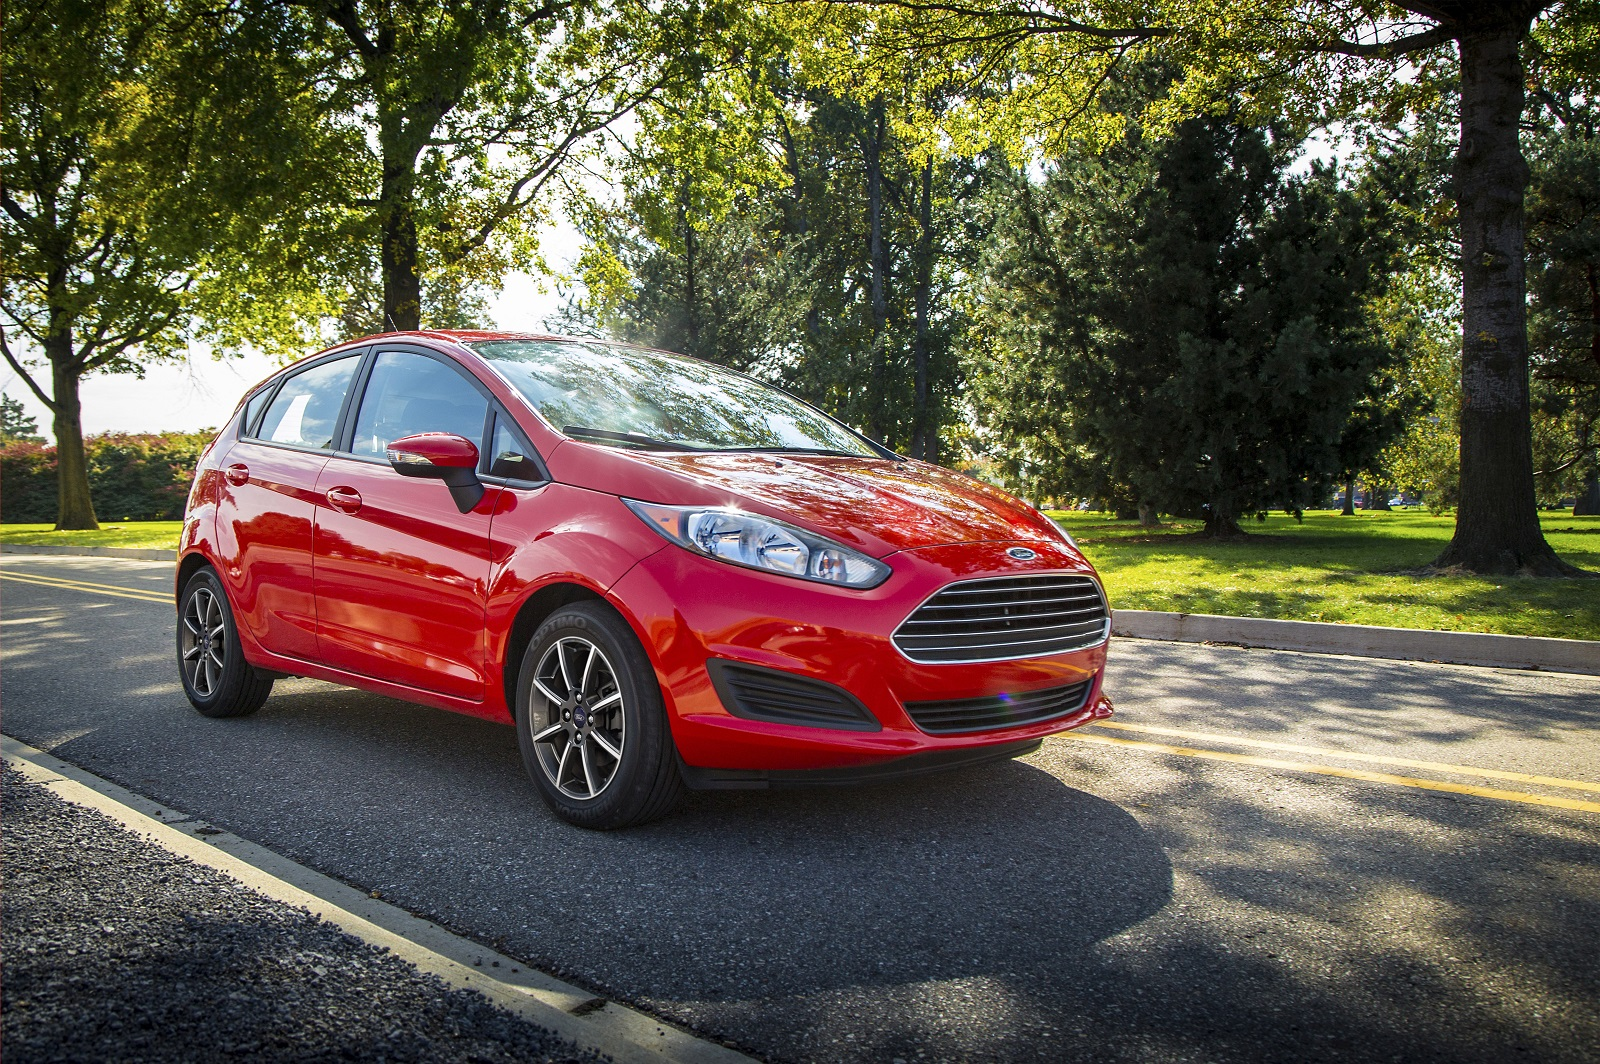 2015 Ford Fiesta Styling Review The Car Connection